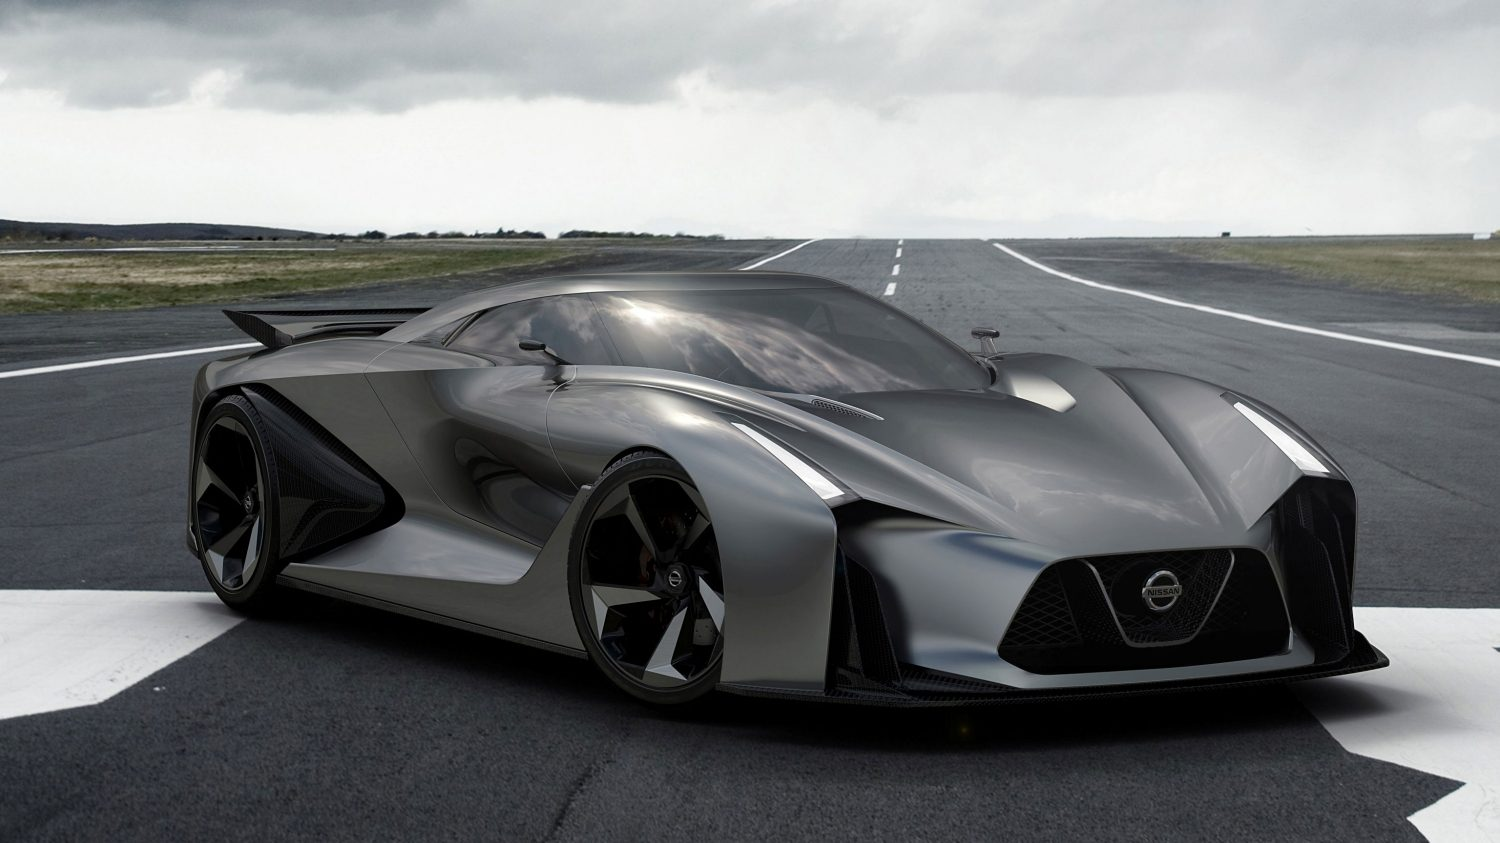 Nissan Concept 2020 Vision Gran Turismo 3/4 front.